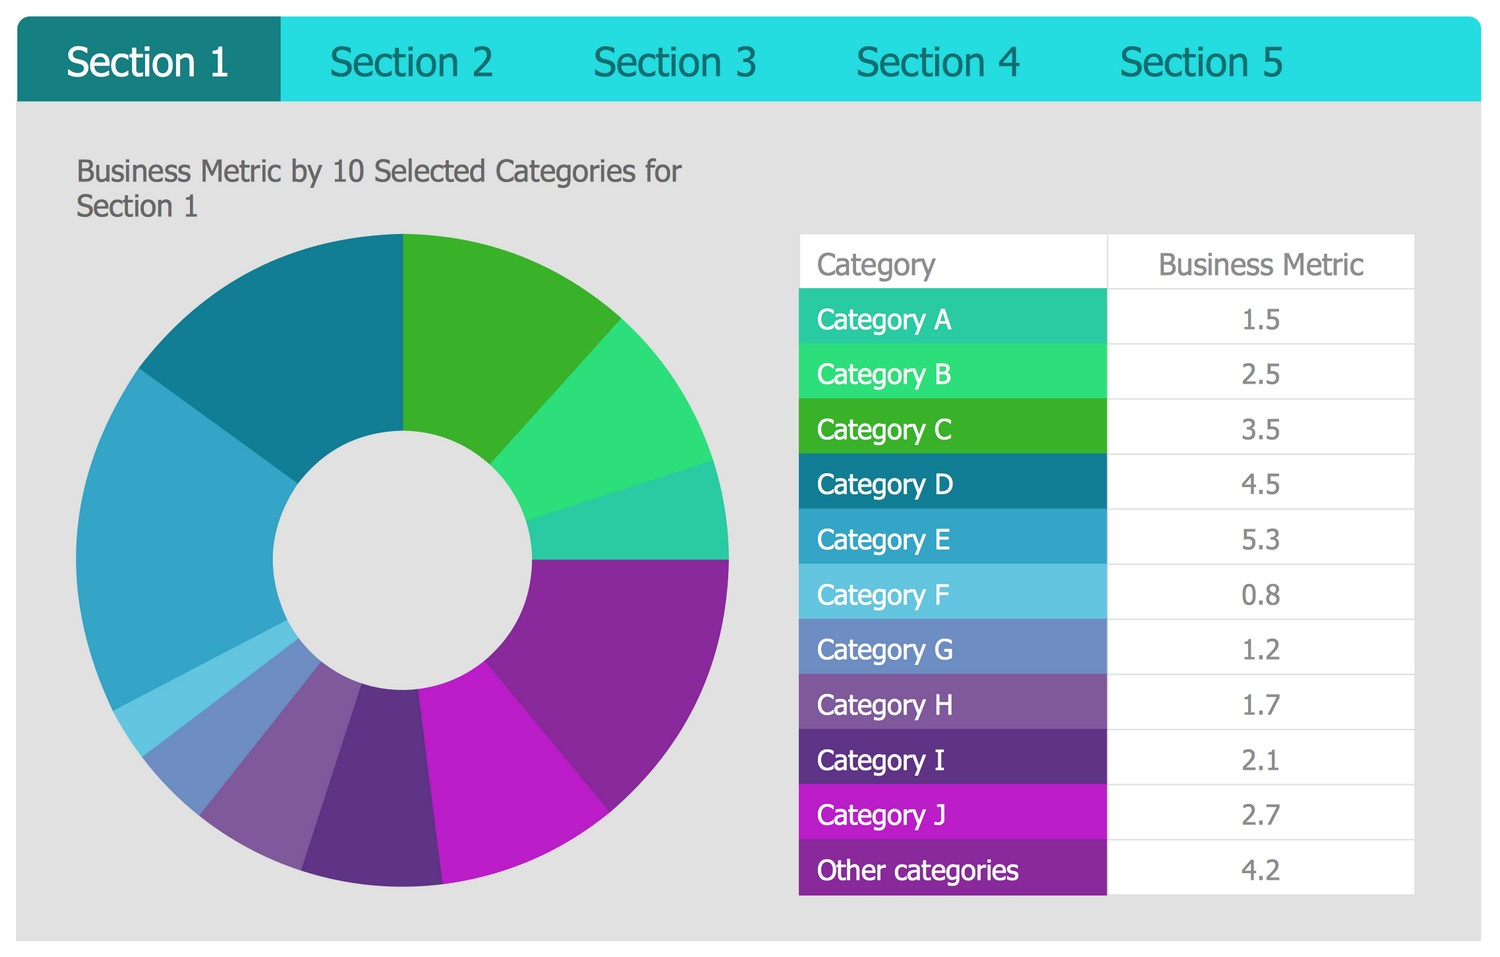 Business Intelligence Dashboard Template - Business Metric by 10 Selected Categories for 5 Sections